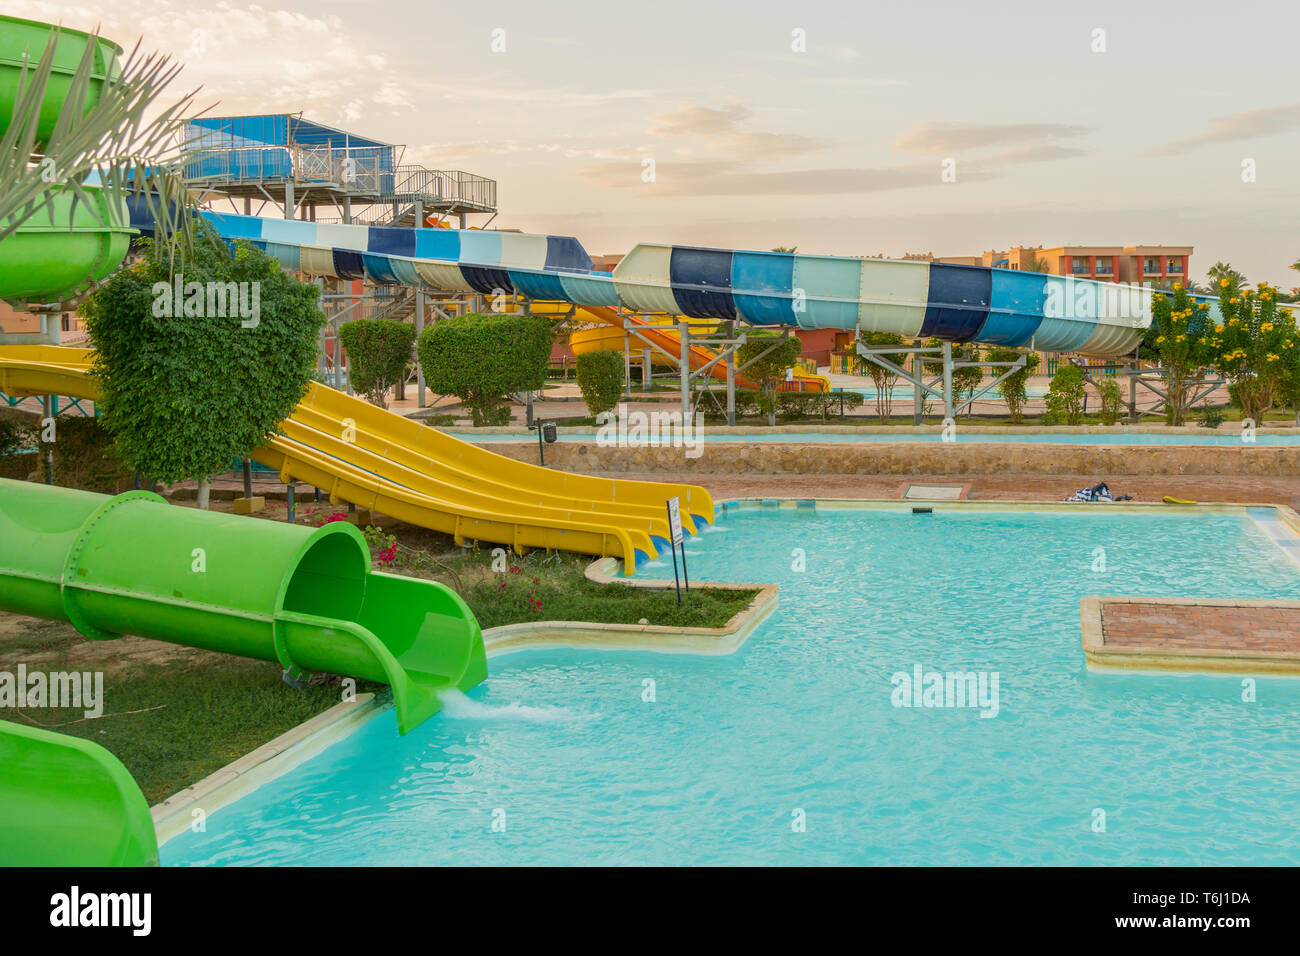 Colourful Plastic Slides In Aquapark In The Sunset Sliders